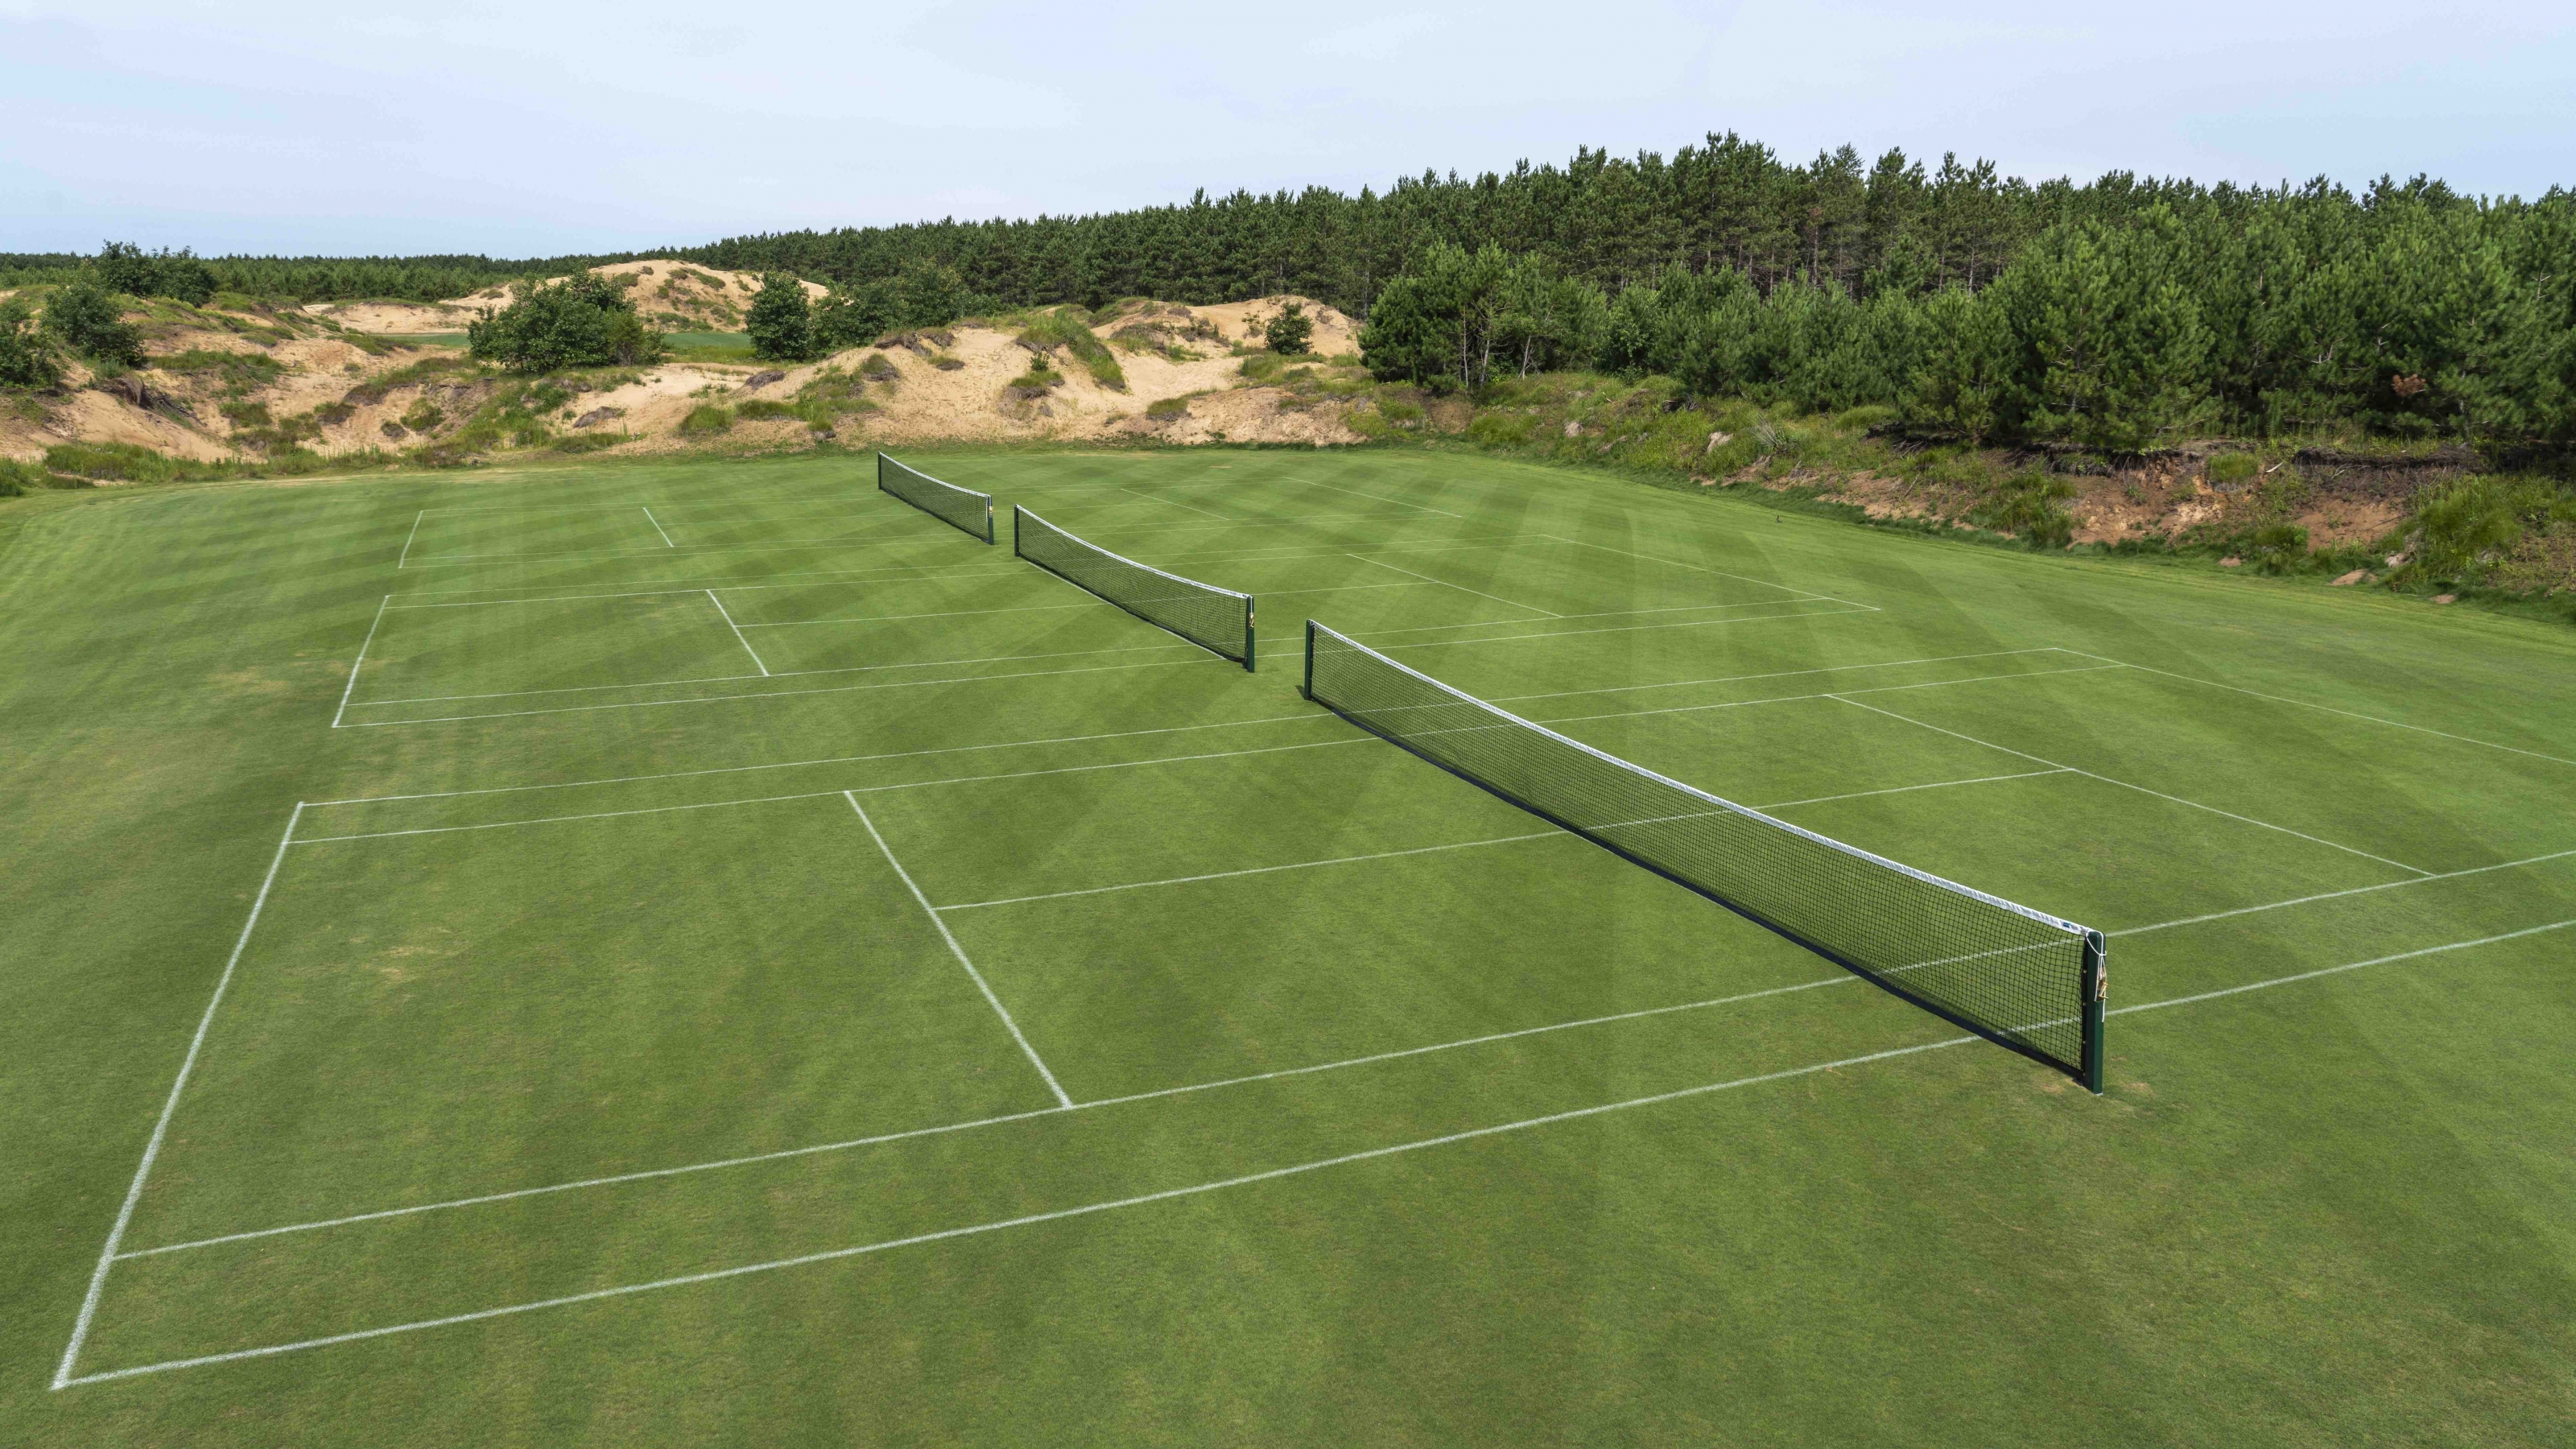 Cliff Drysdale Tennis Selected to Manage Tennis Operations at Sand Valley